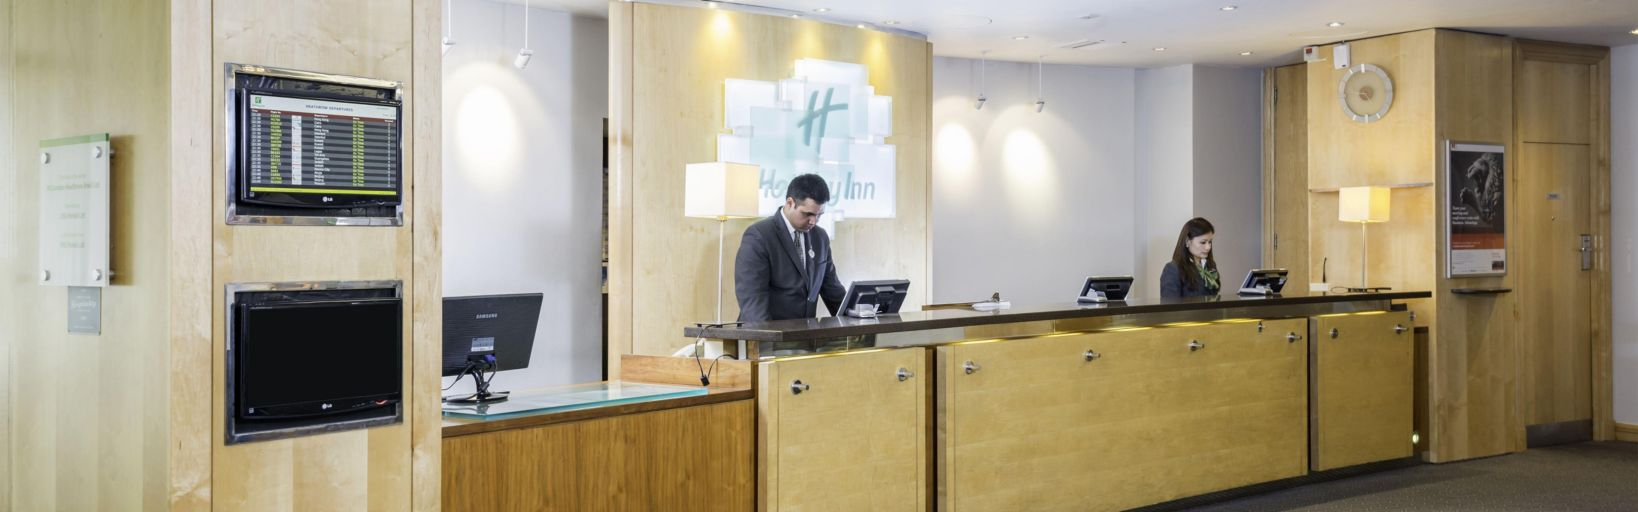 Airport Hotel Holiday Inn London Heathrow Ariel